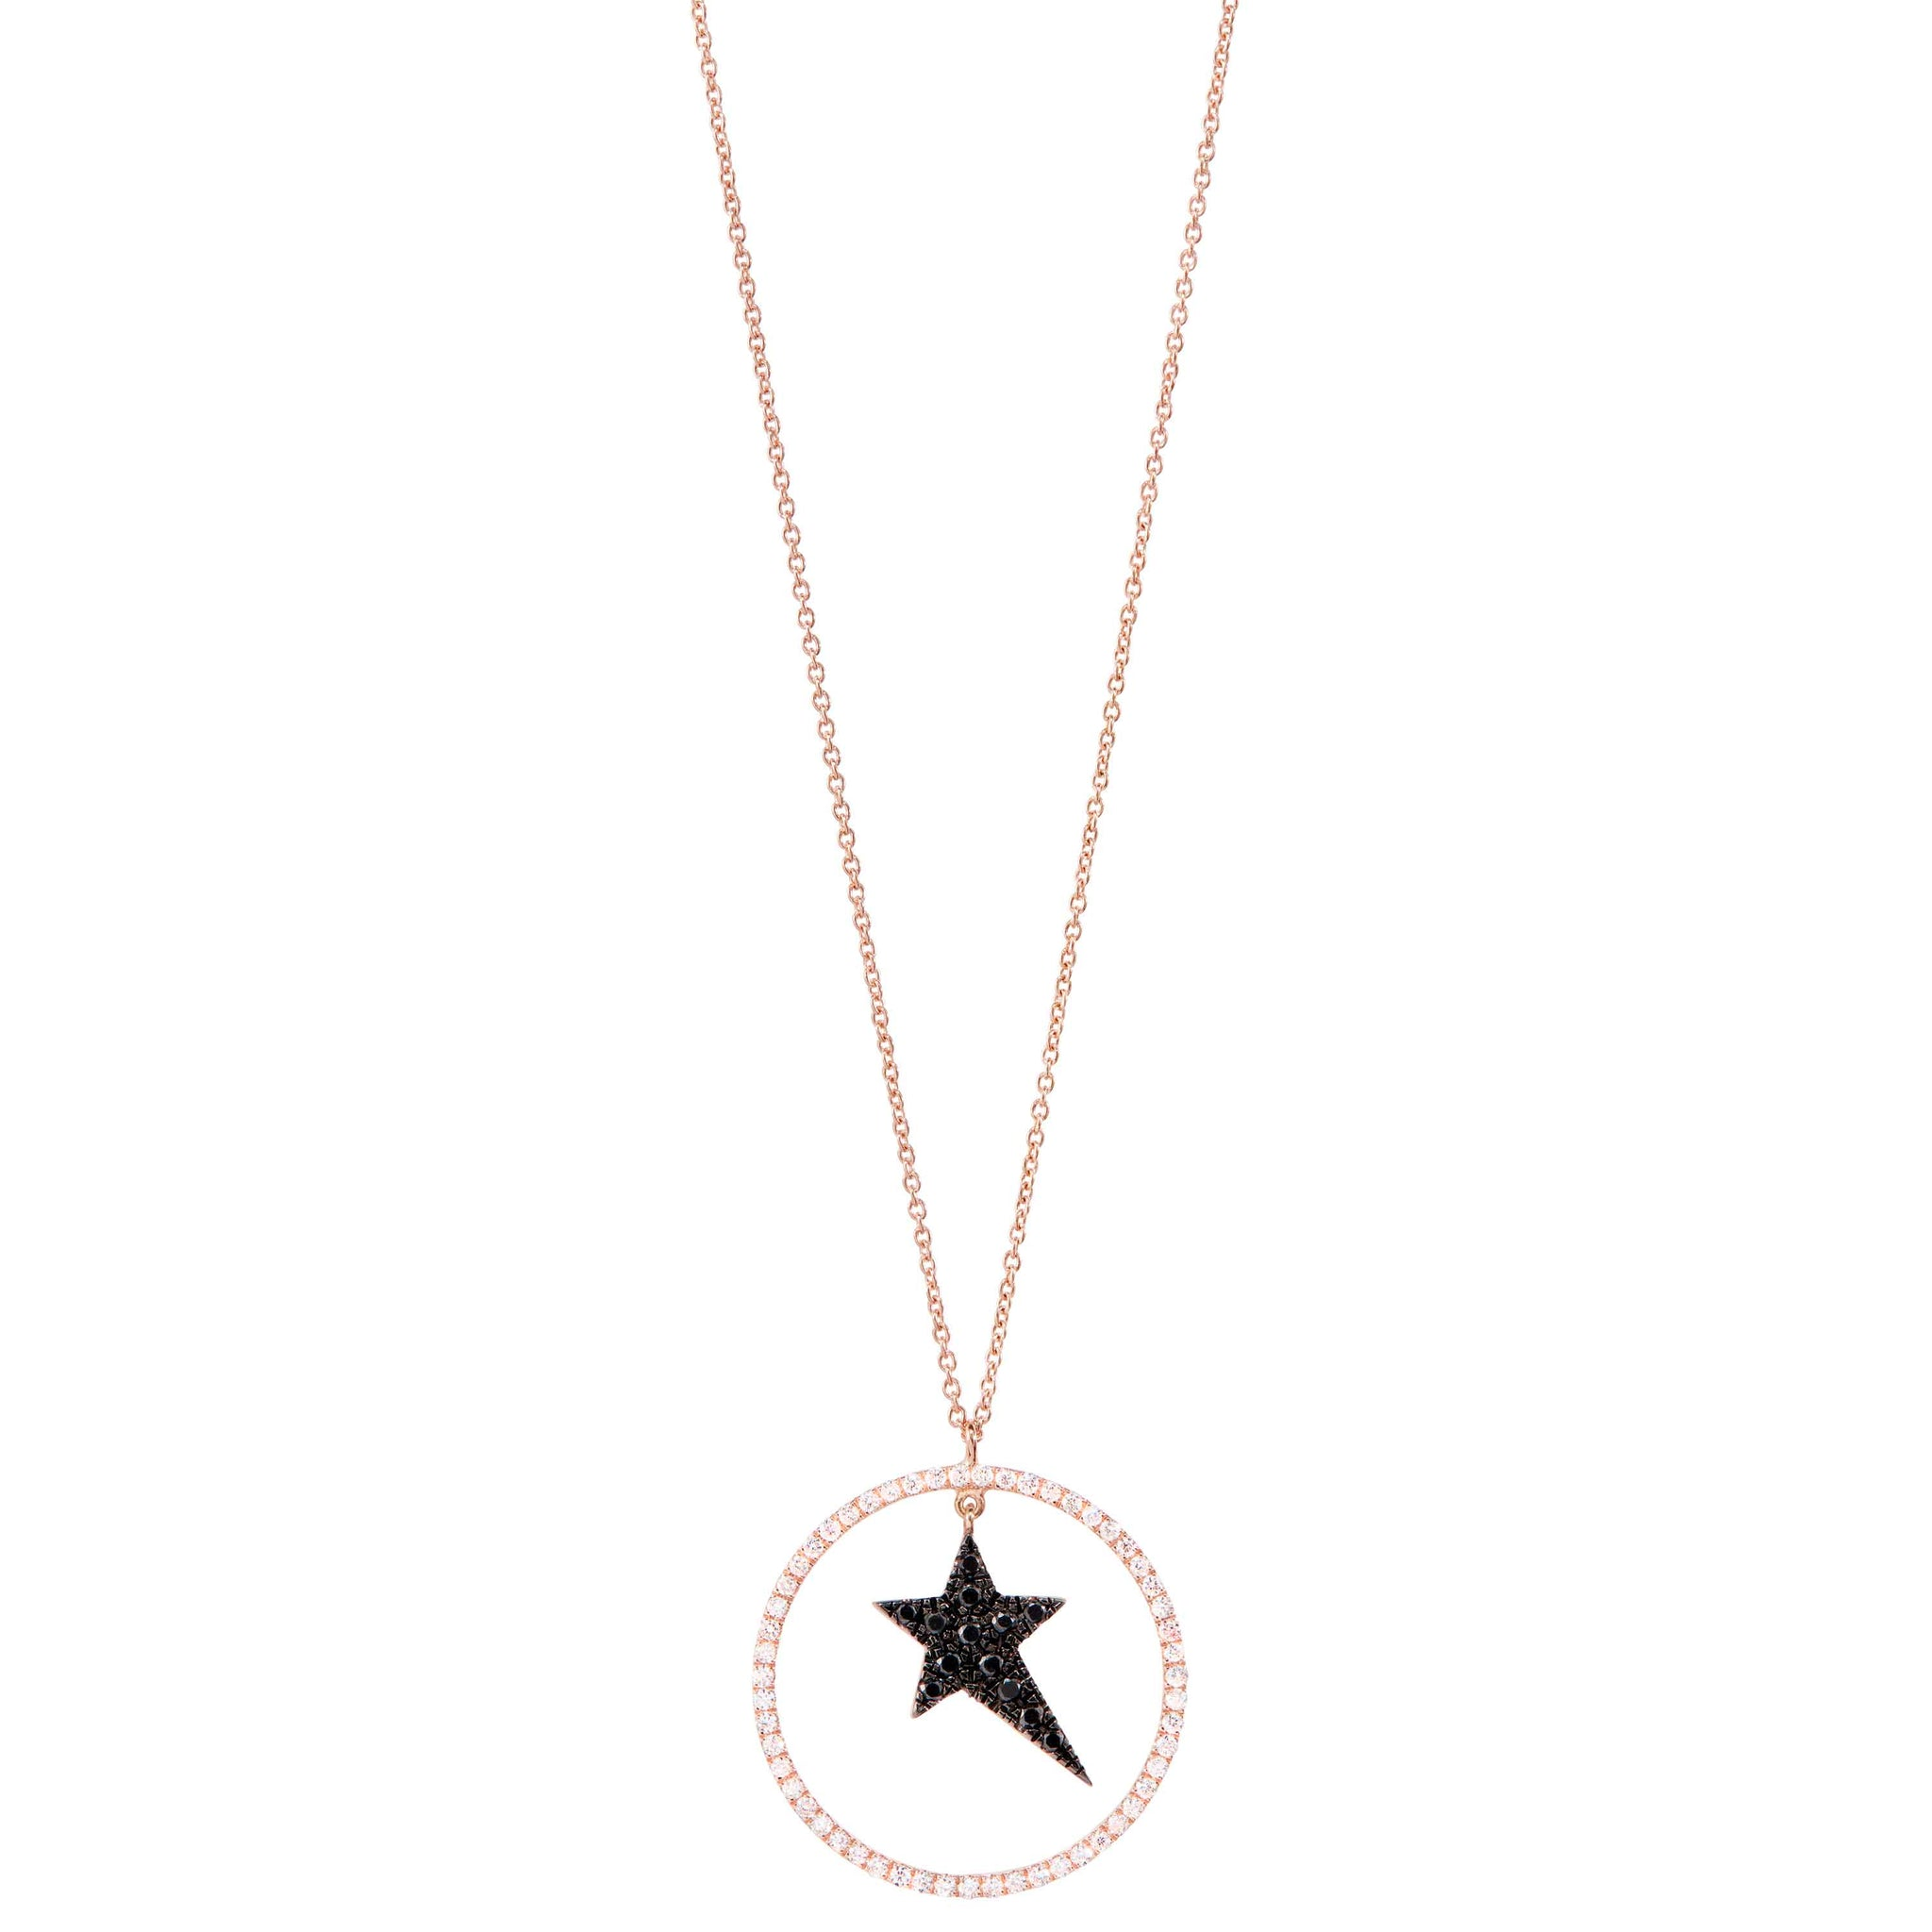 Diane Kordas Black Star Necklace with Diamond Circle